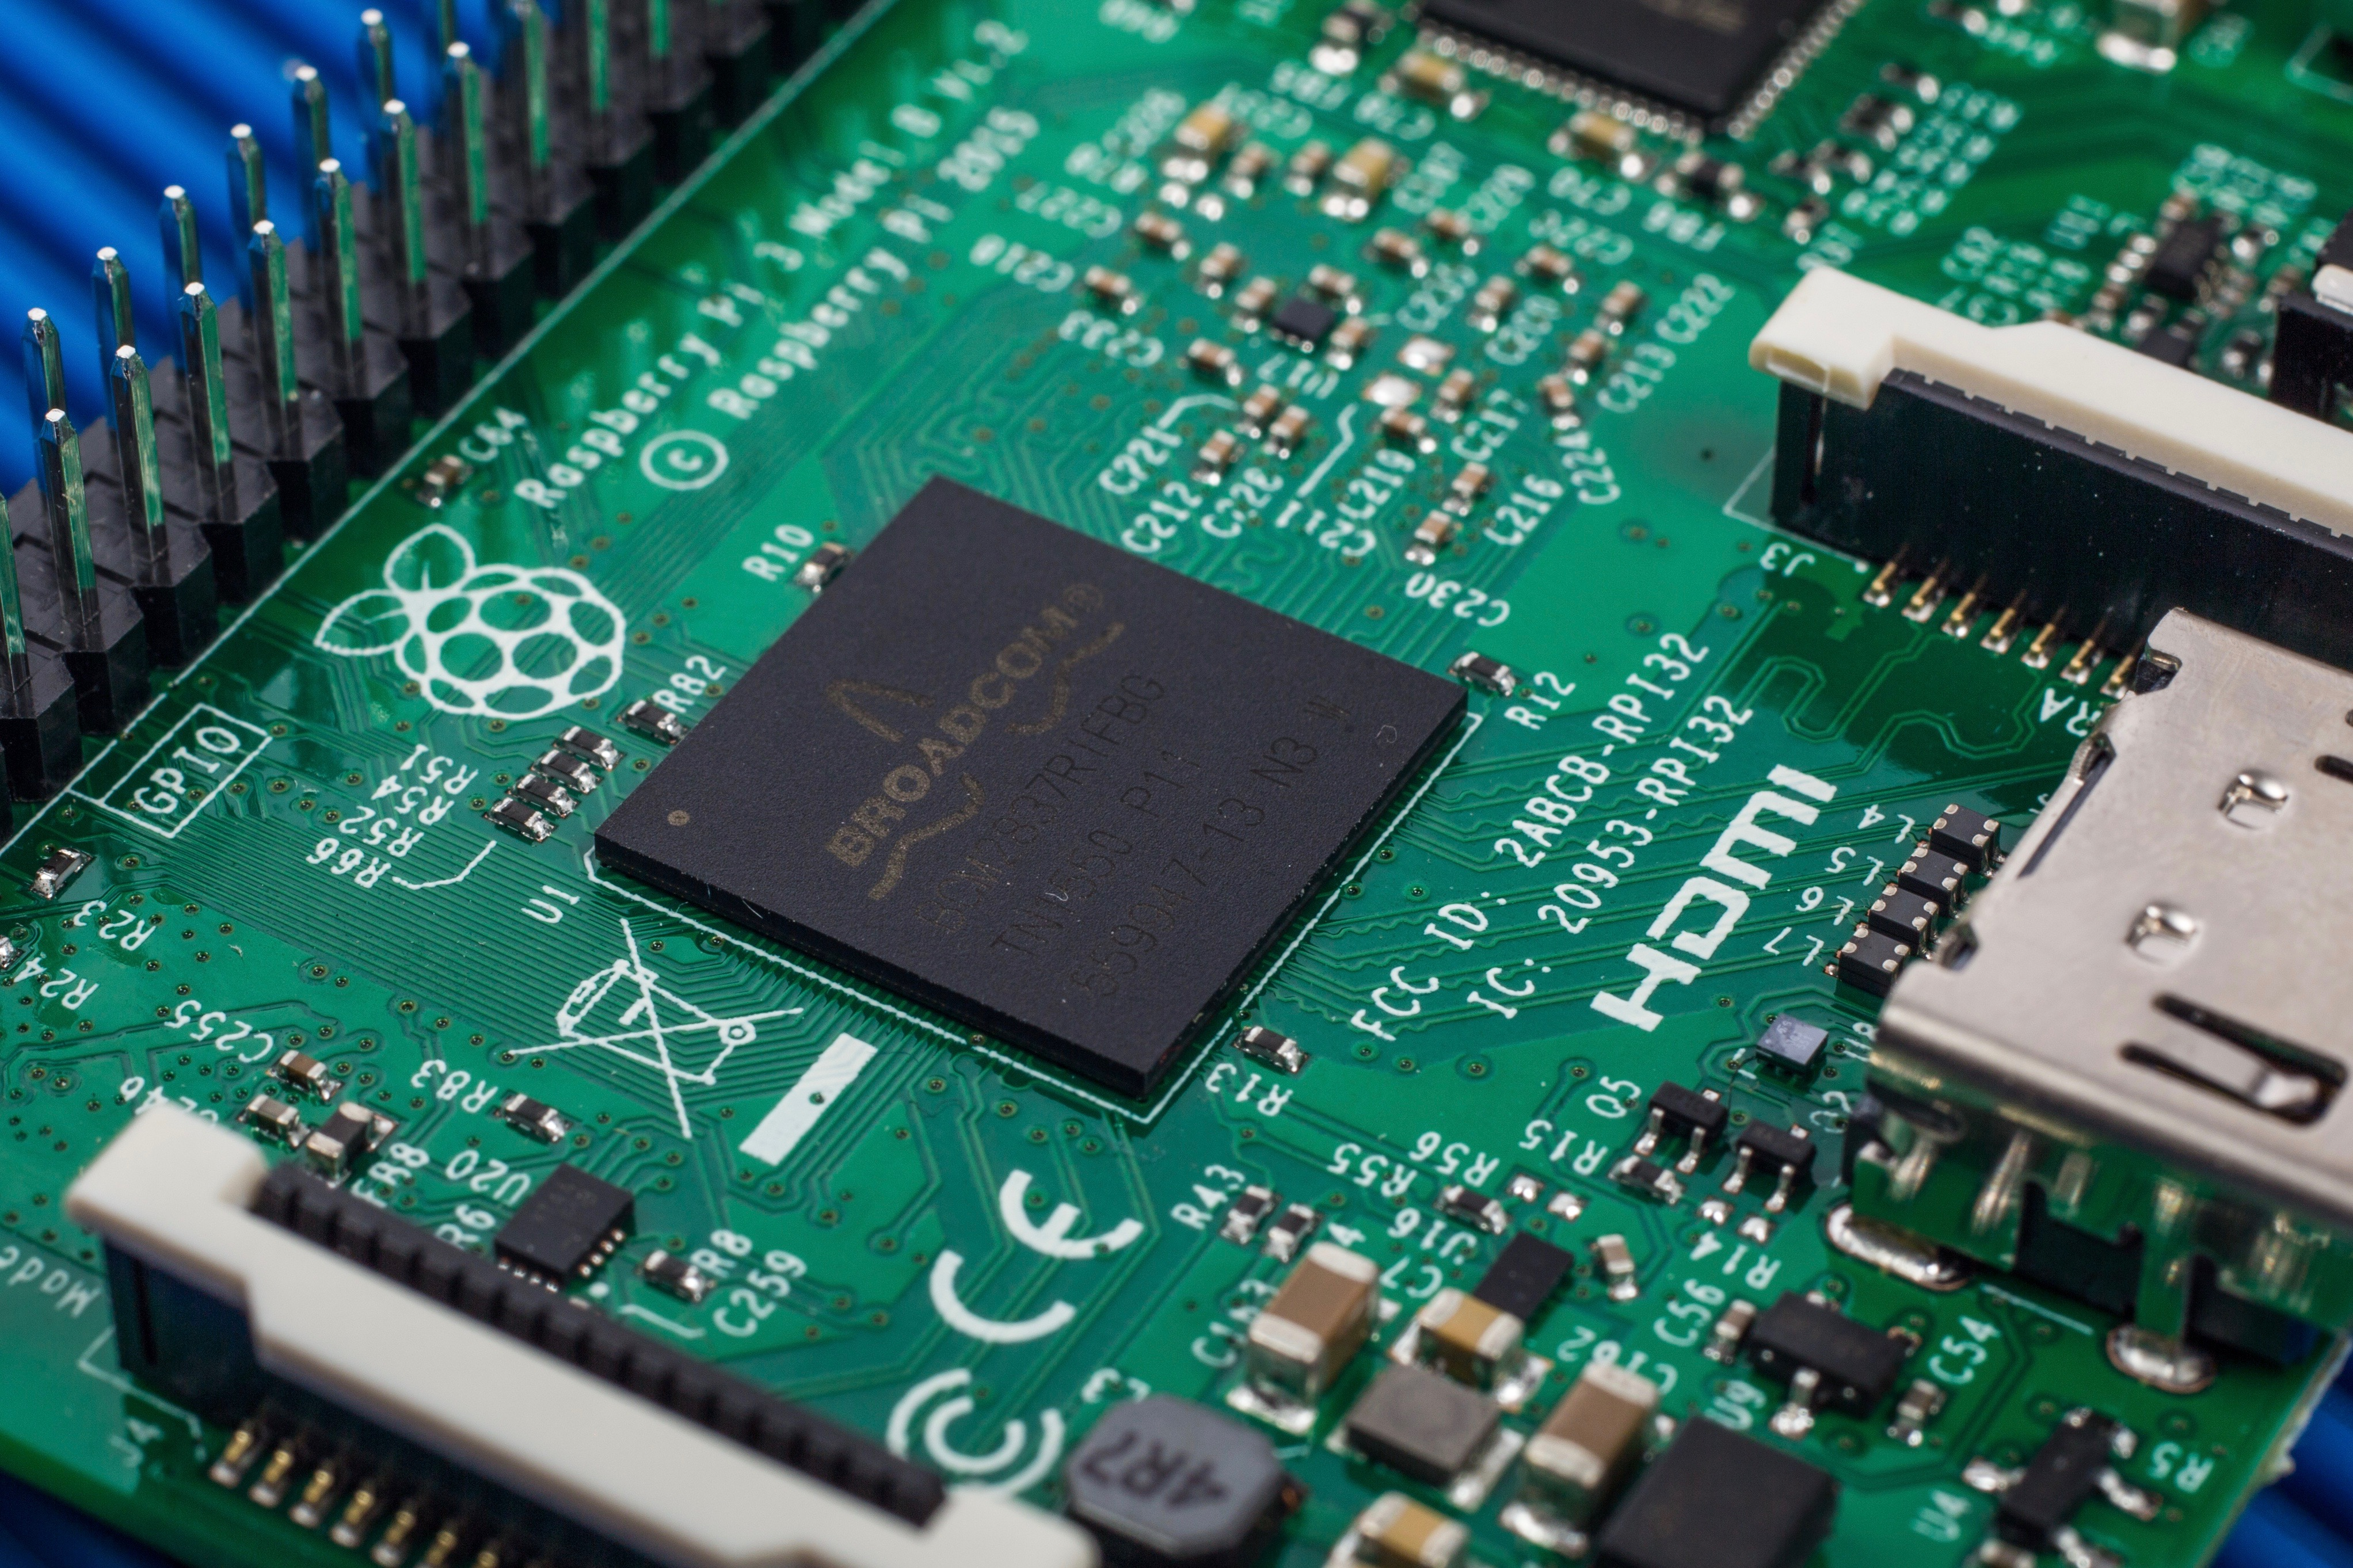 The New Raspberry Pi 3 With Wi Fi And Bluetooth Make Or Photo Of Computer Electronic Circuit Cpu Board Breaking Binary Code Bcm2837 A Quad Core 64 Bit Arm Cortex A53 Processor